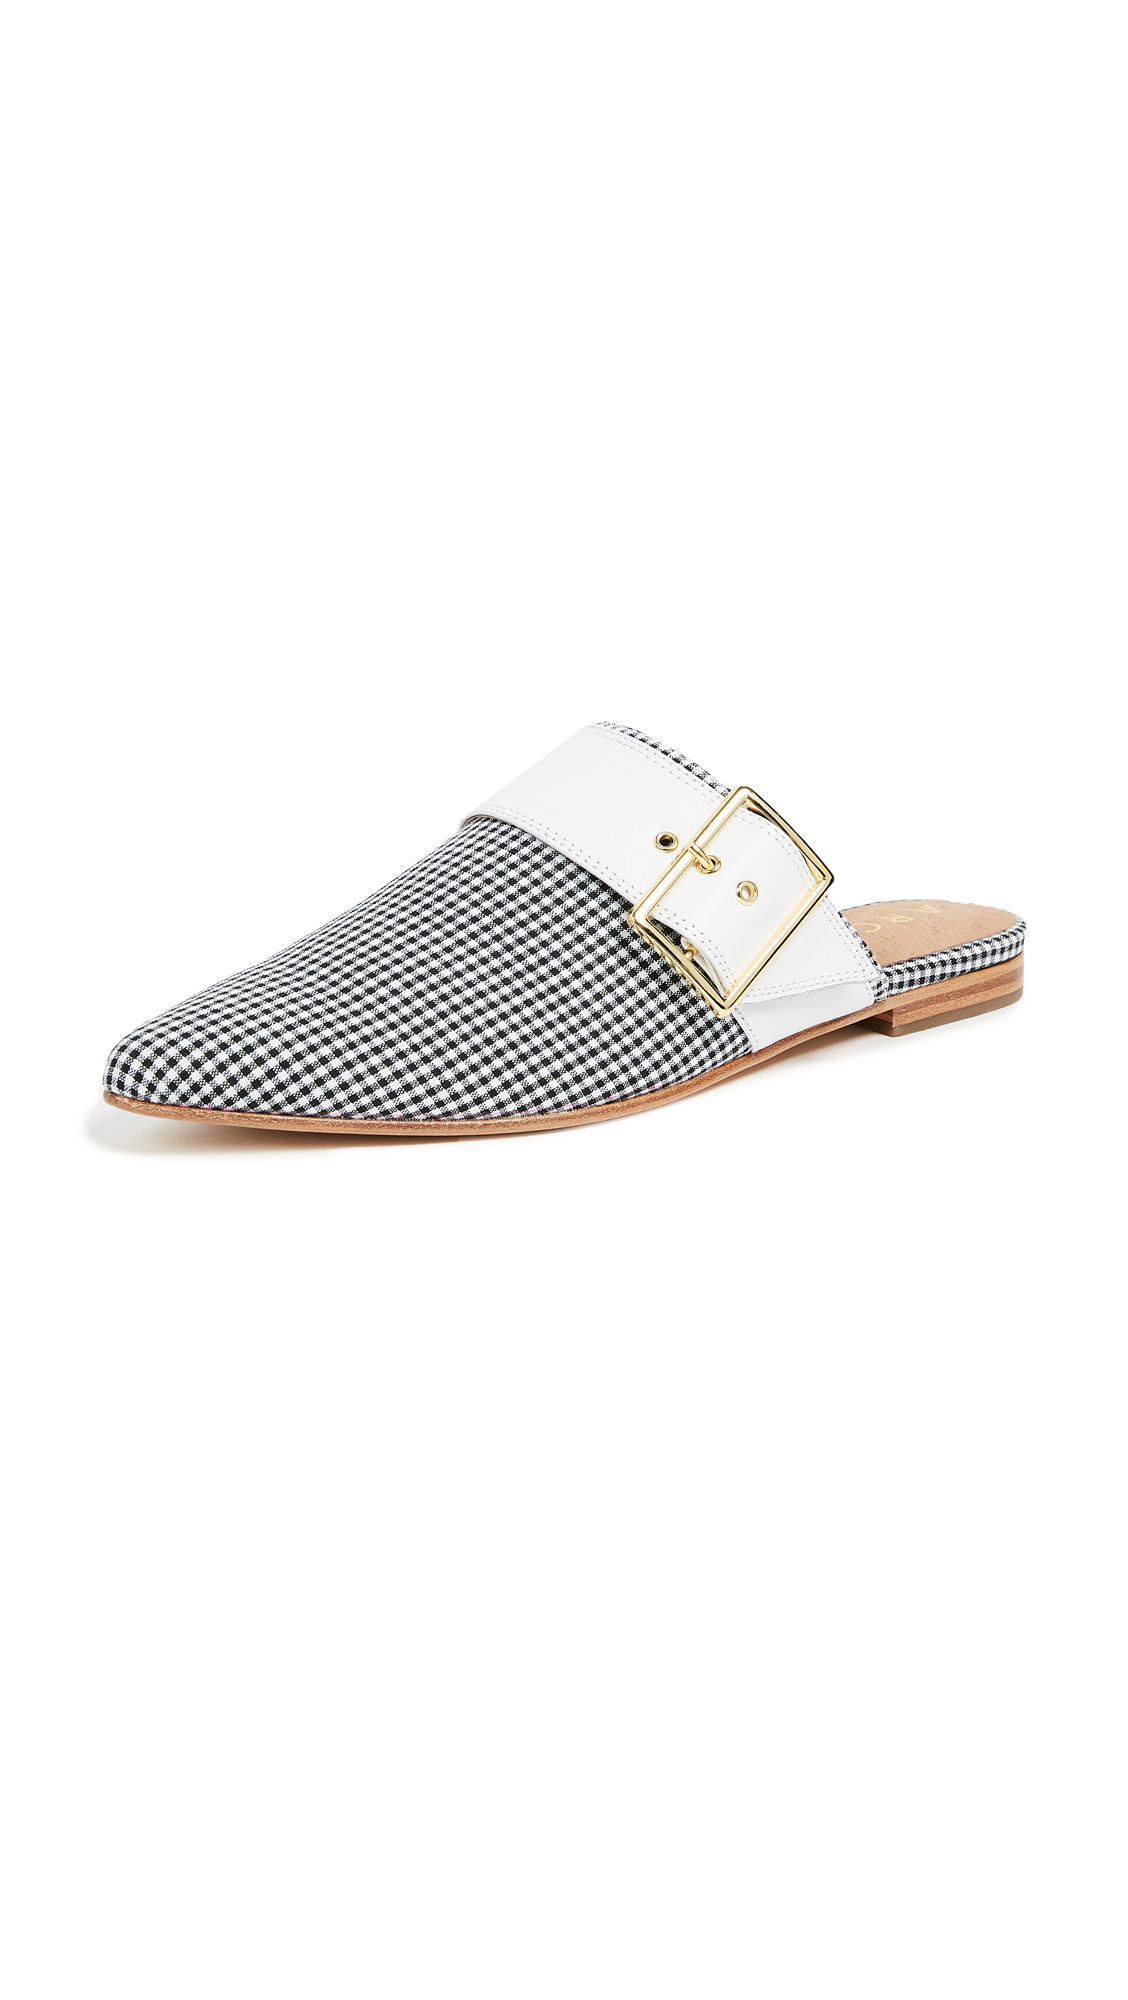 The Archive Bond Buckle Mules - Gingham